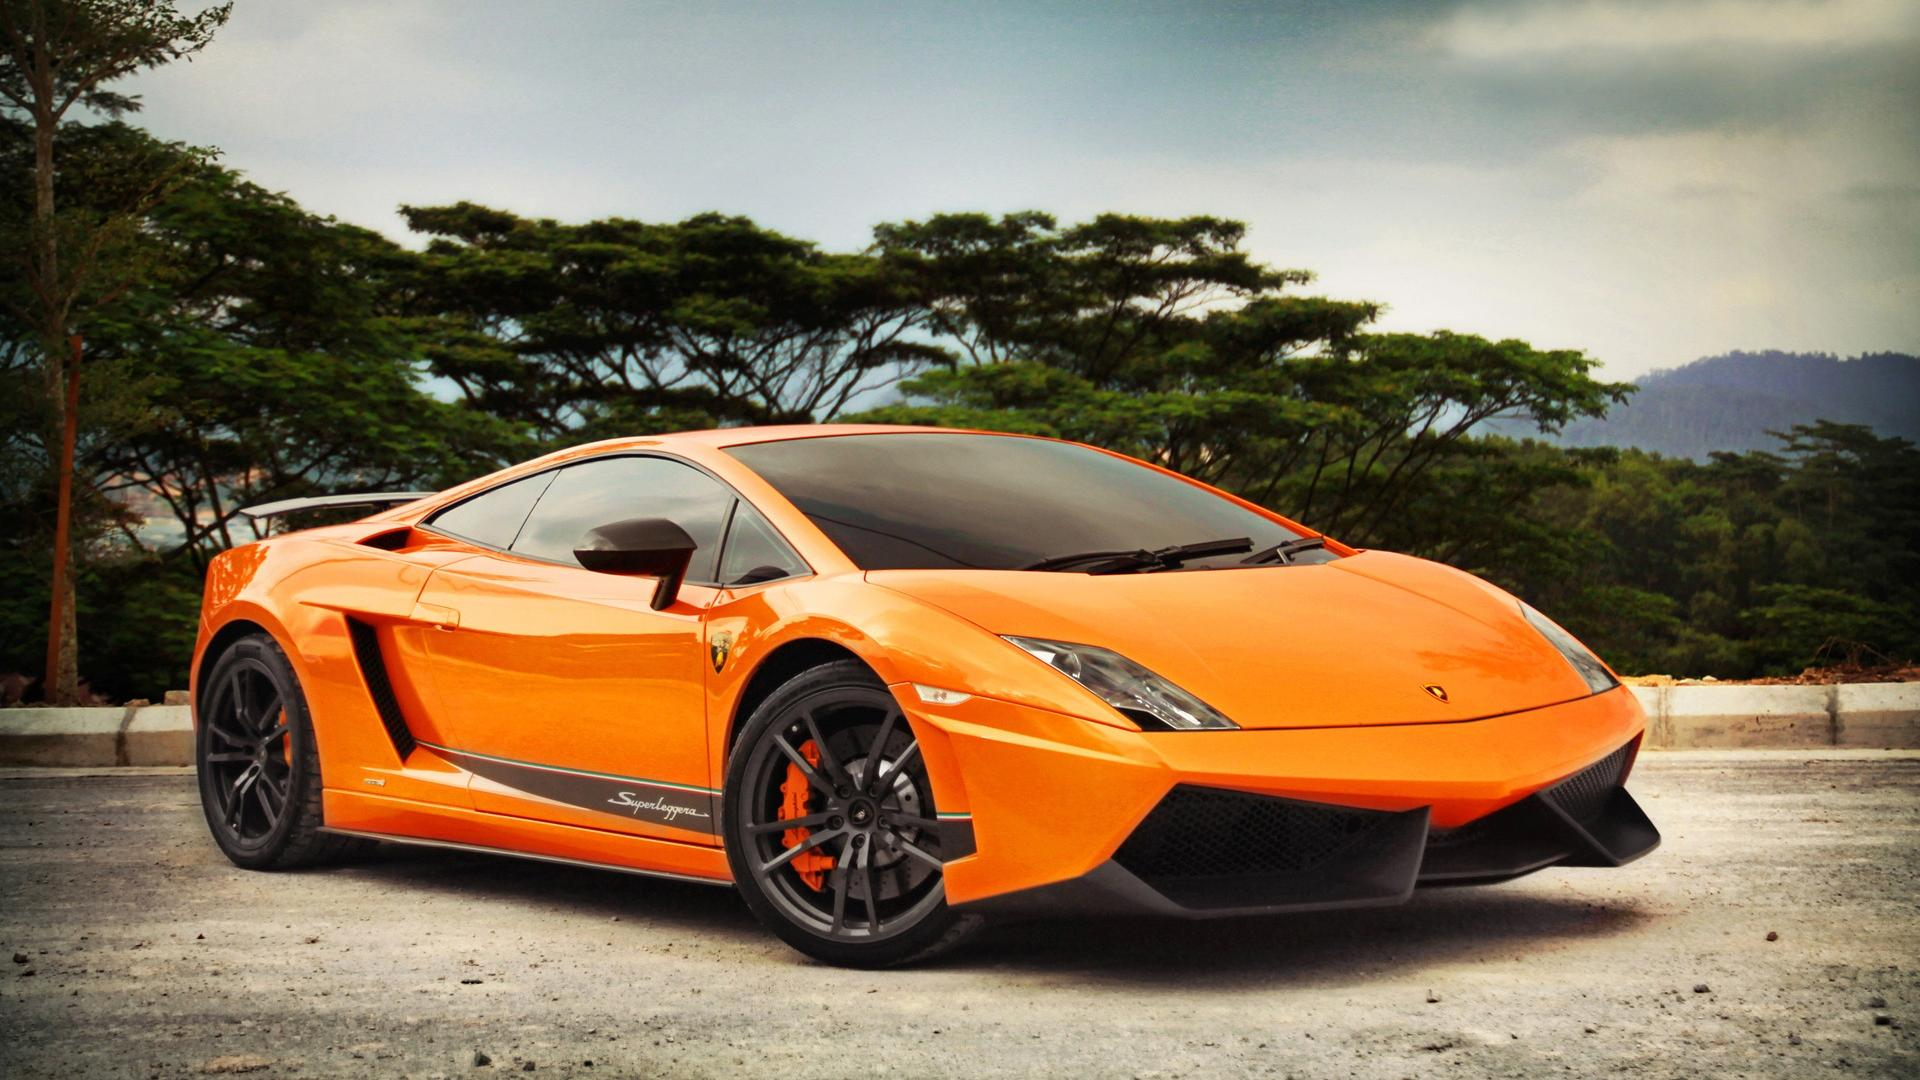 New Lamborghini Gallardo Sports Cars HD Wallpaper of Car 1861